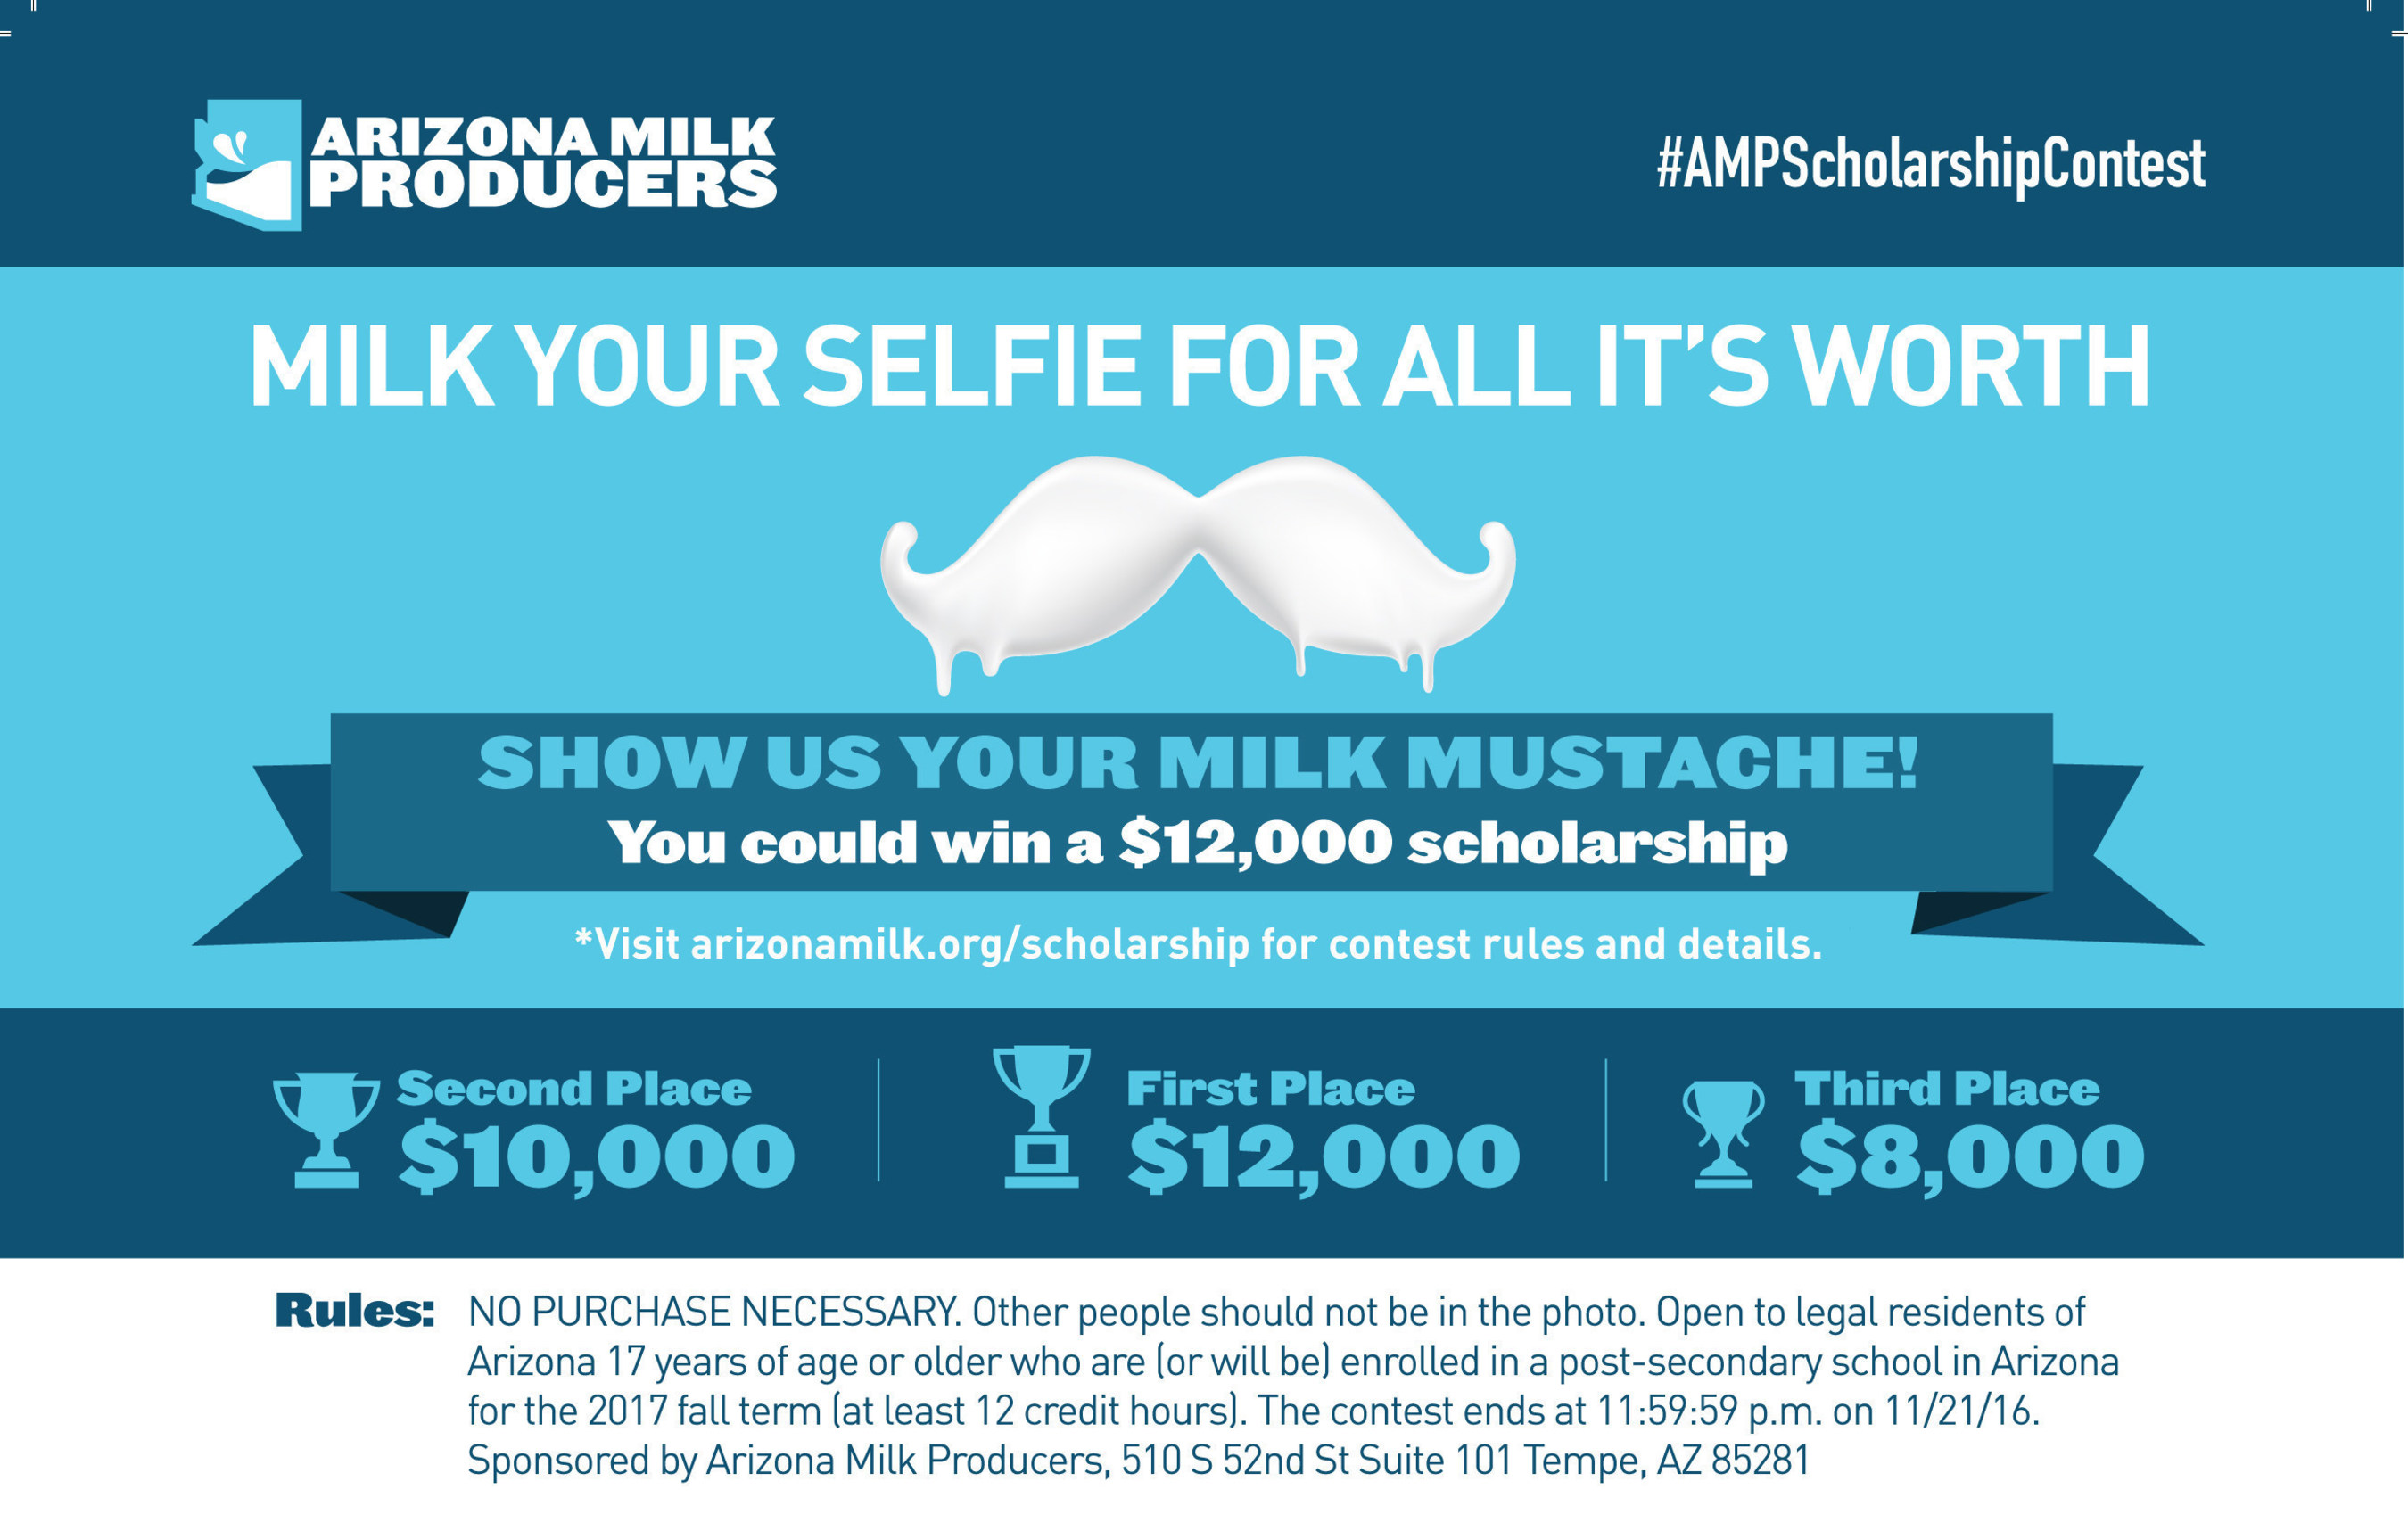 Arizona Dairy Farmers give back to community, support education with milk mustache contest